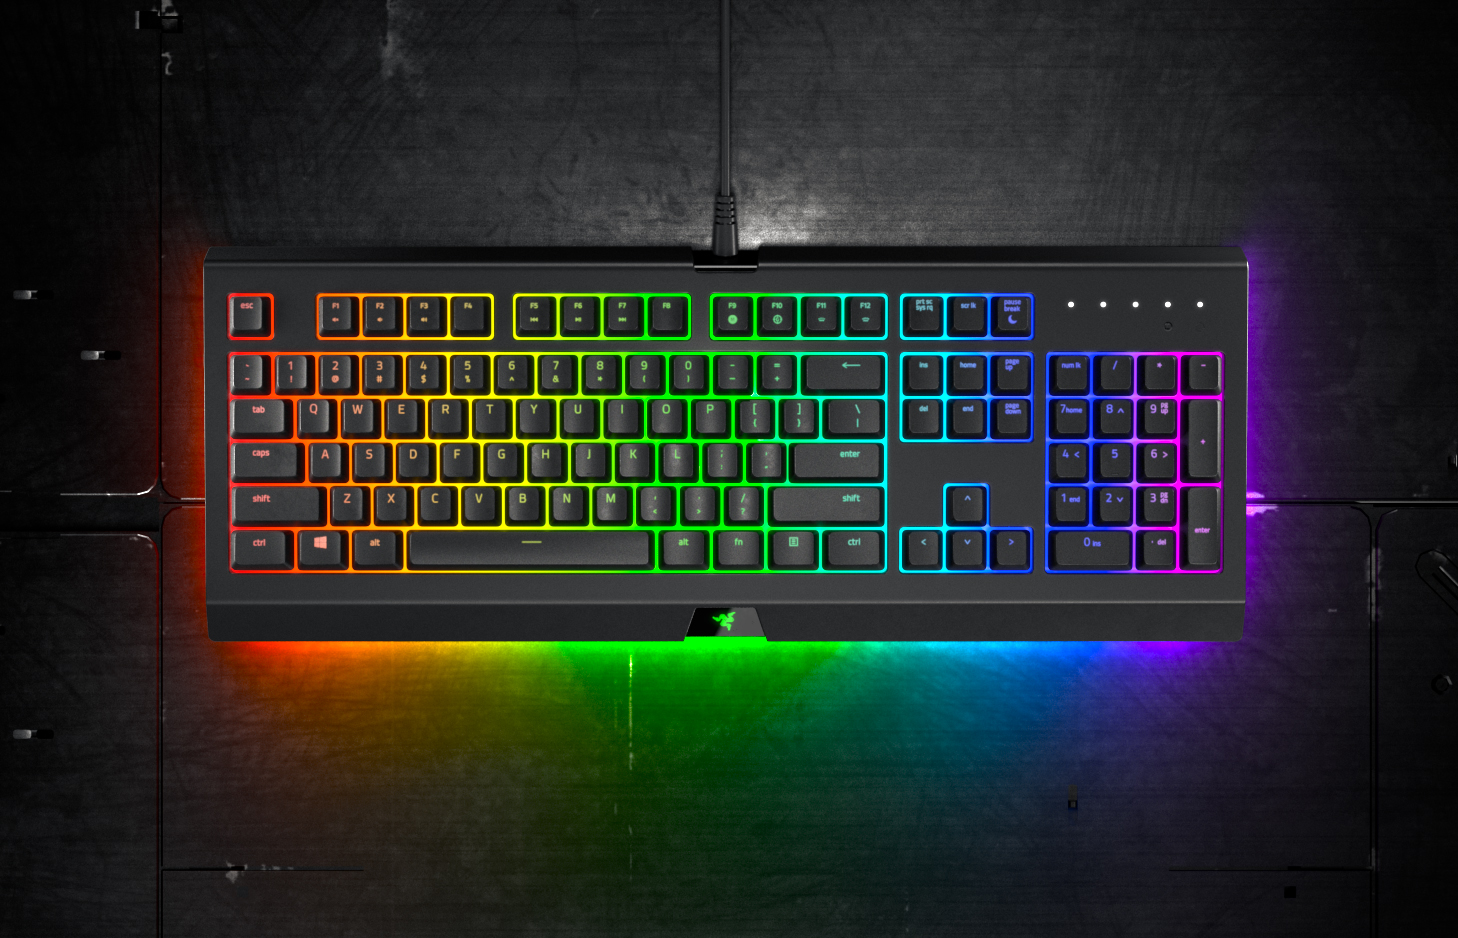 Vivaldi browser now syncs Chroma device lighting with website colors